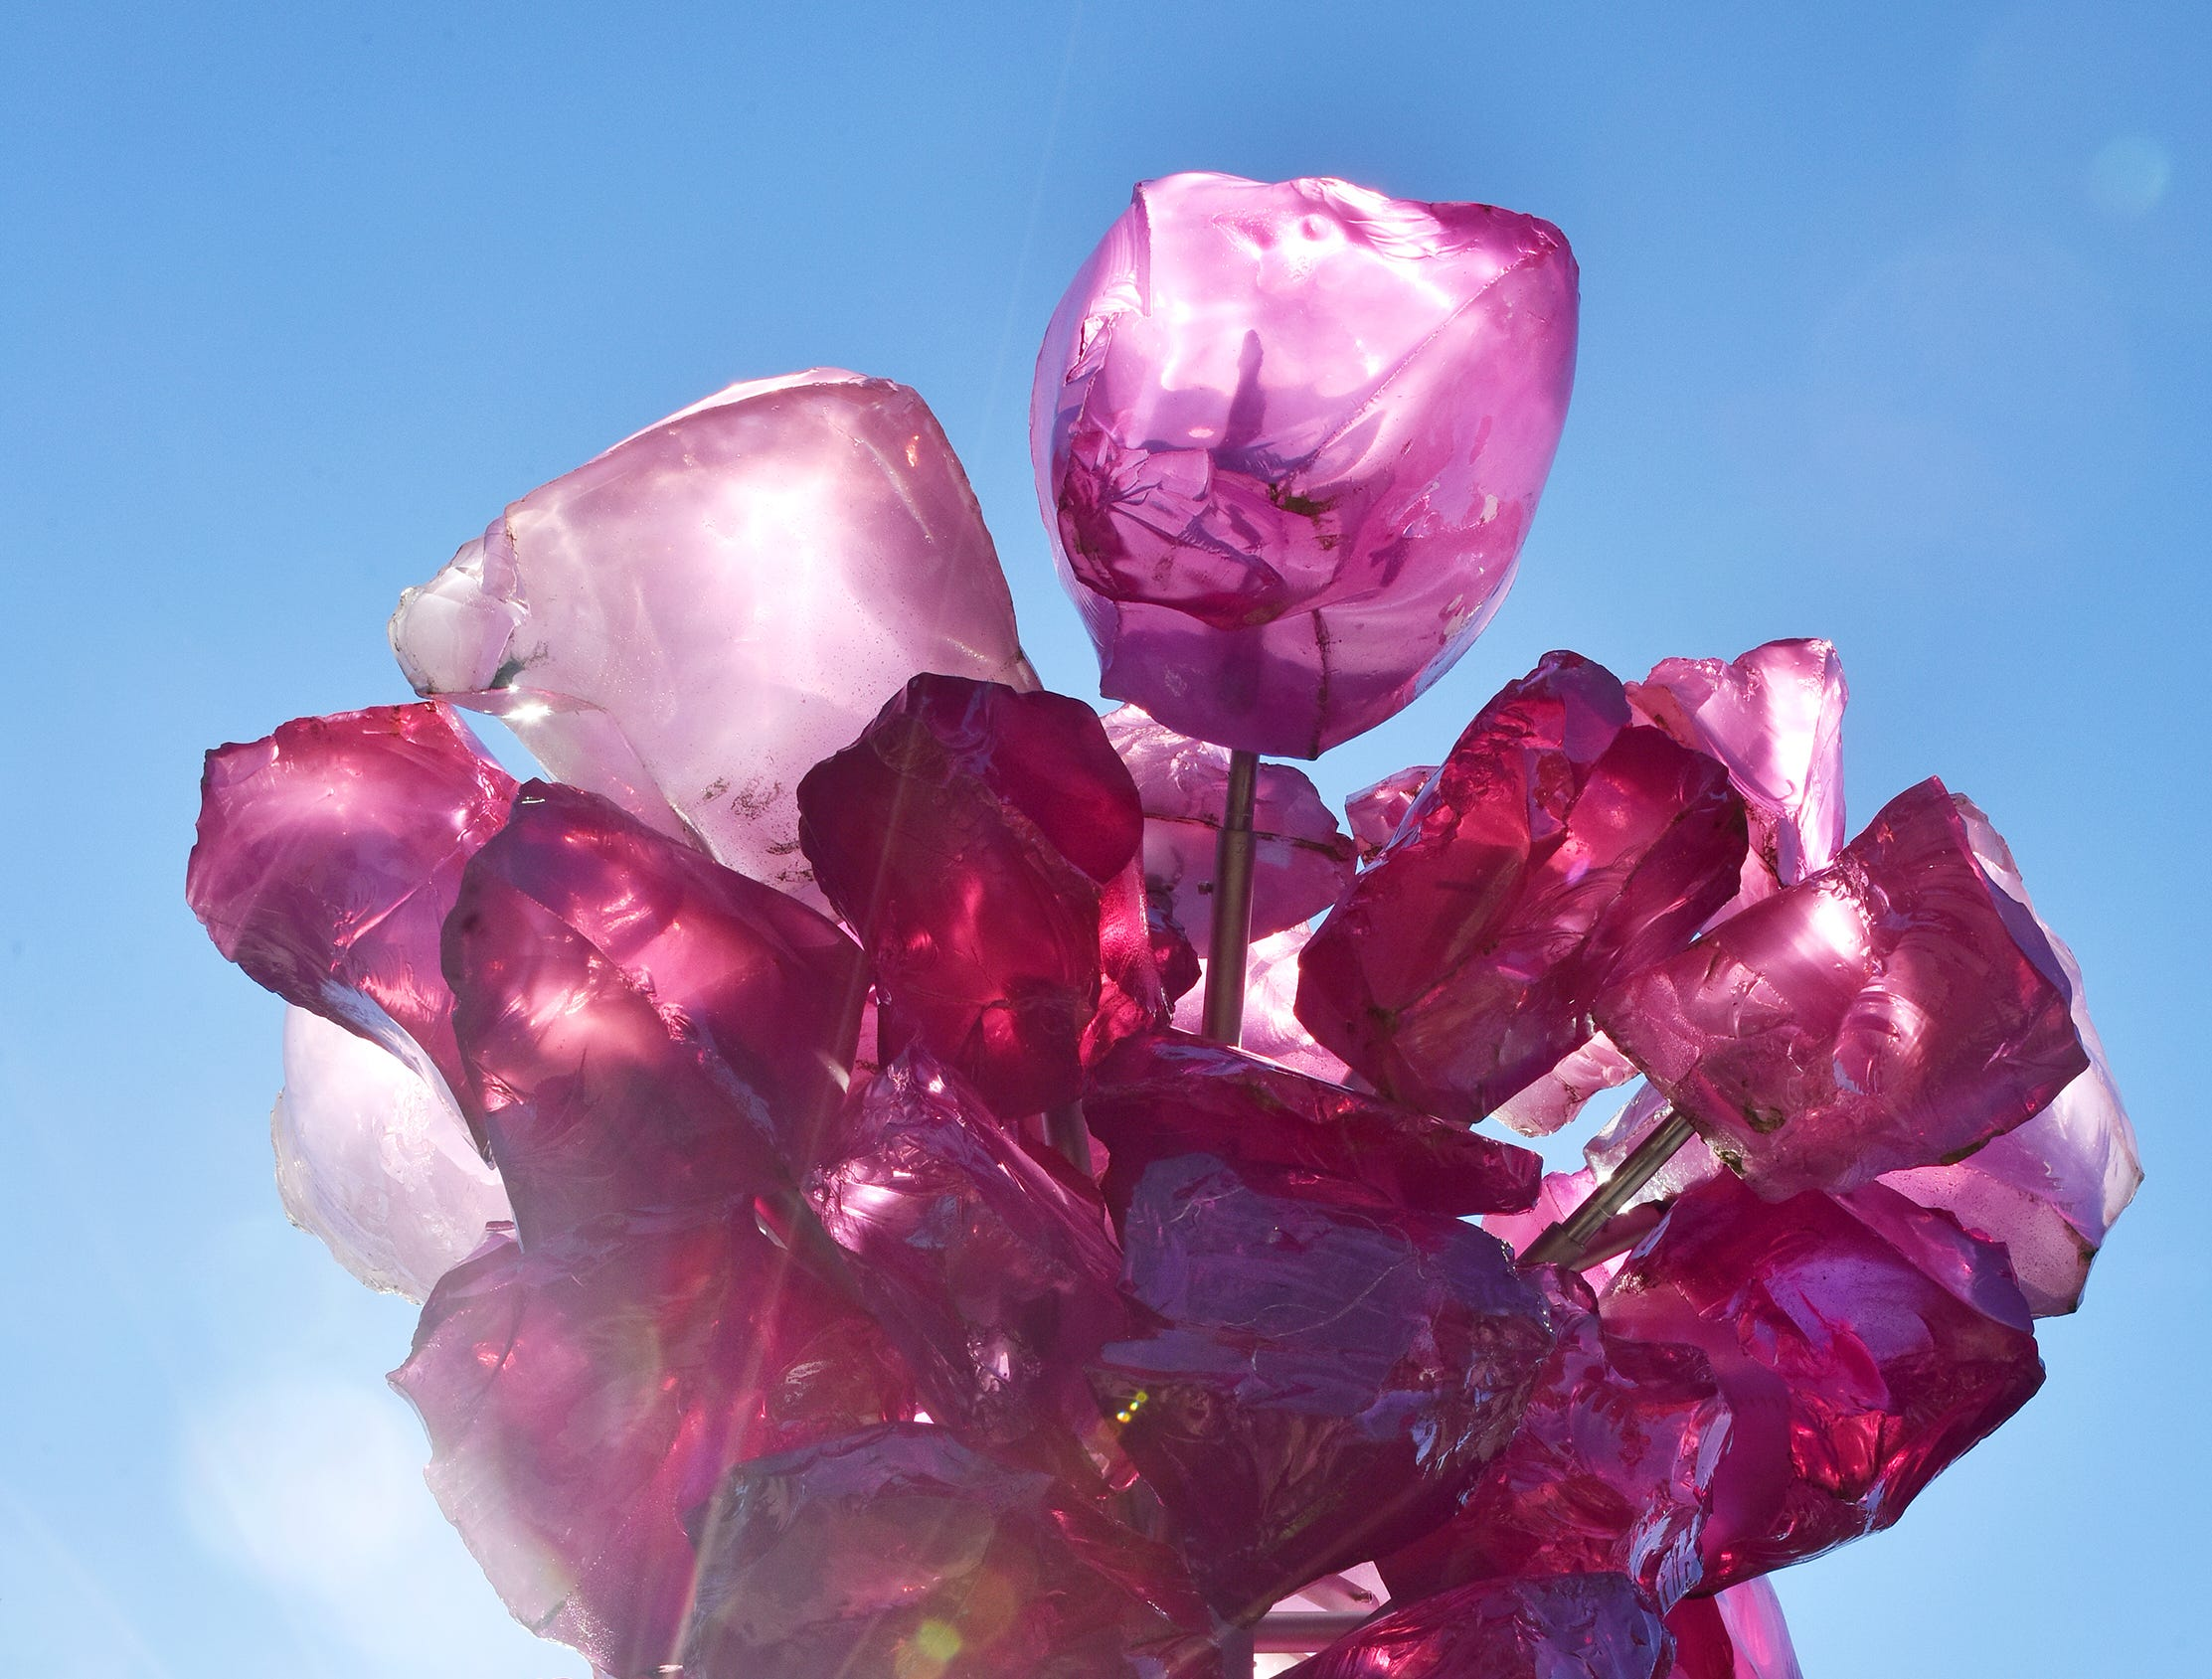 The Rose Crystal Tower by glass sculptor Dale Chihuly. Located near the Governor's School, this sculpture was commissioned in honor of Harriet Wyche, a life-long Greenville resident and community volunteer, and is located in a garden named for her.